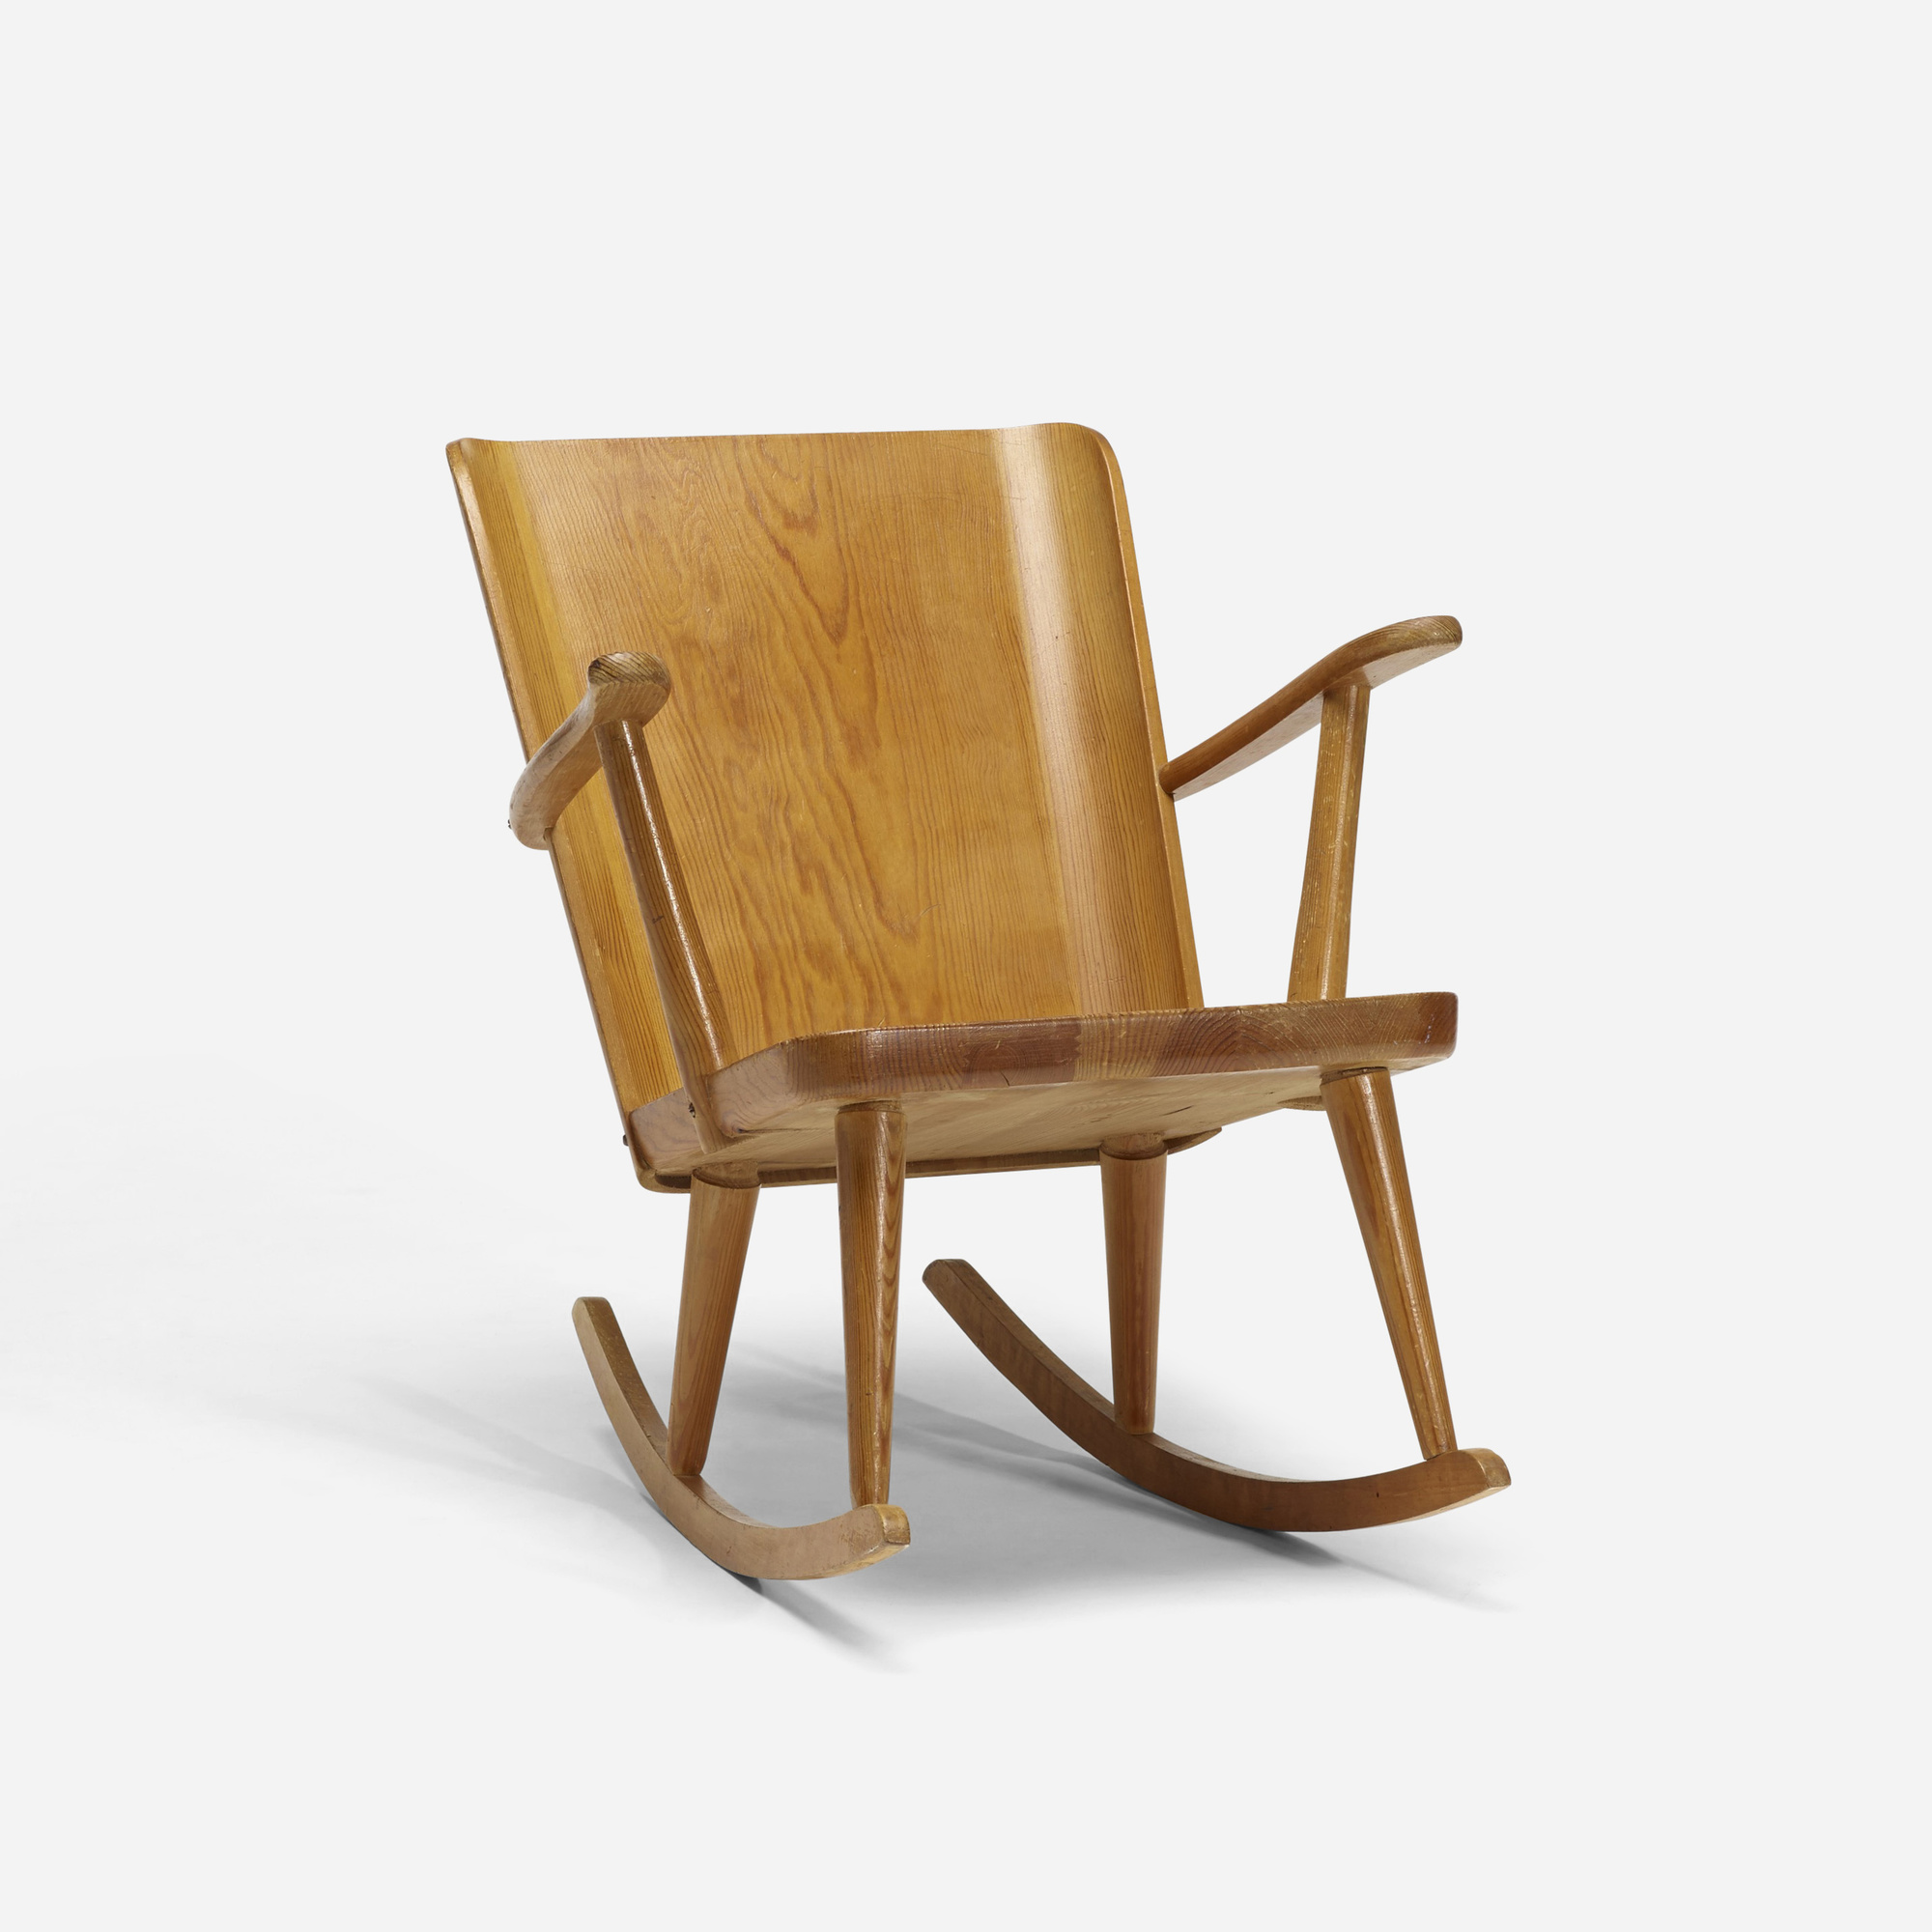 241 Carl Malmsten pine rocking chair Scandinavian Design 3